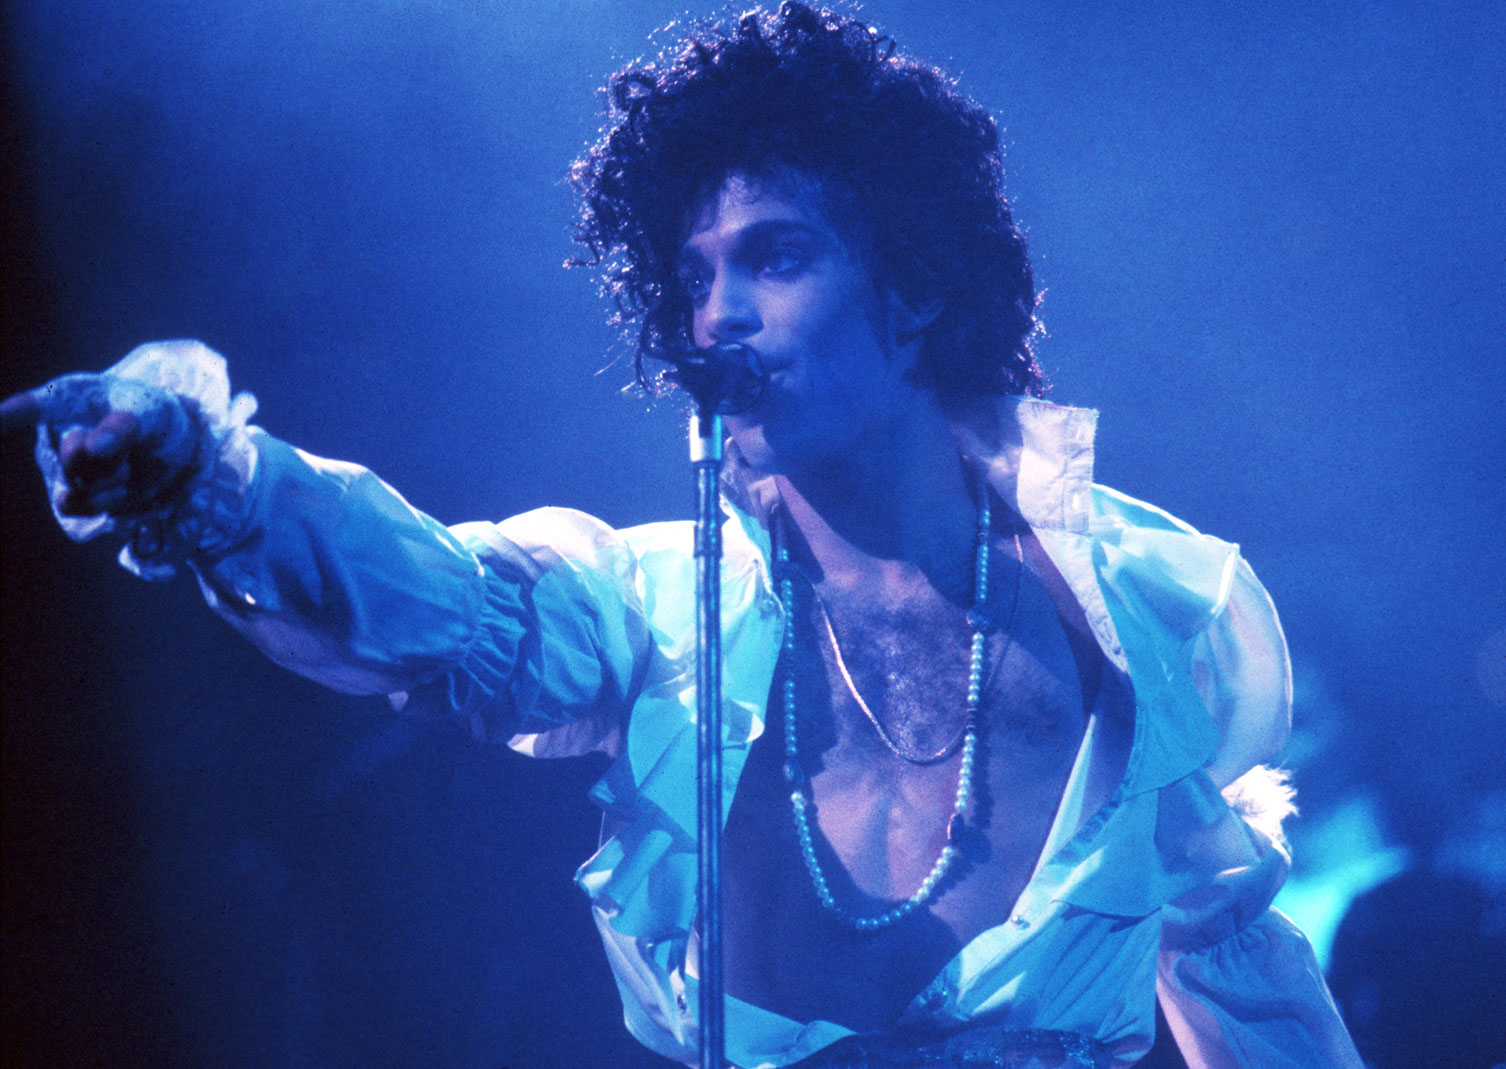 _prince-performs-live-at-the-fabulous-forum-in-inglewood